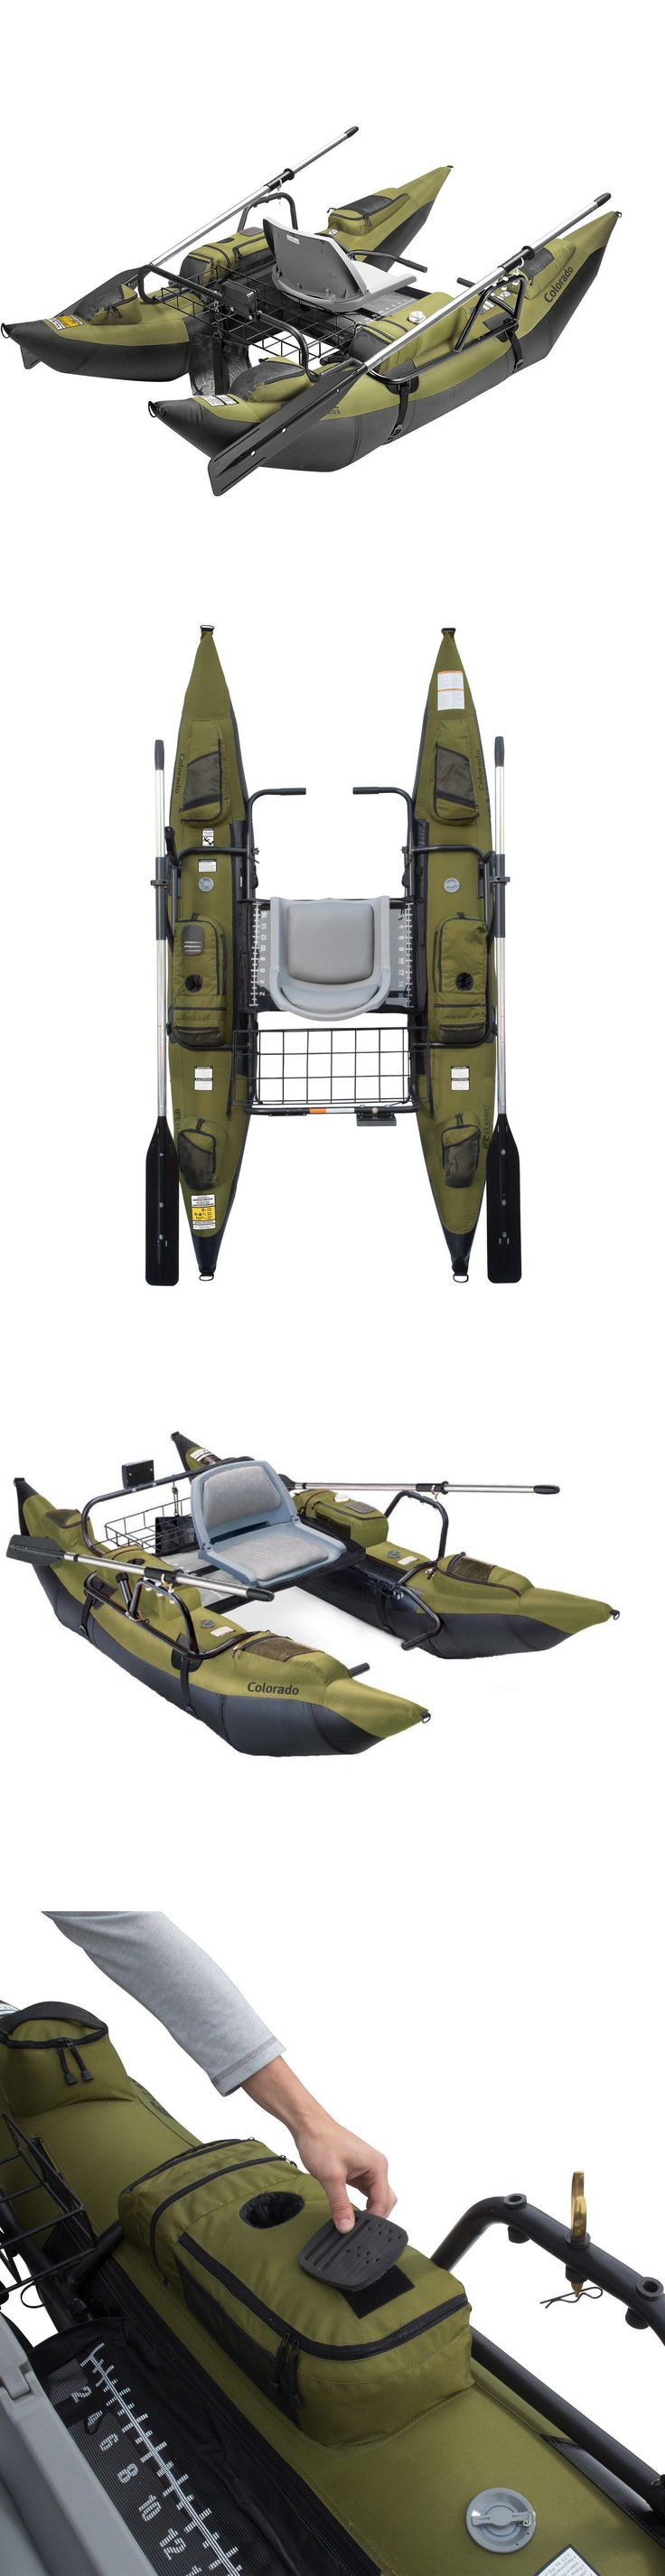 Other Kayak Canoe and Rafting 36123: Pontoon Fishing Boat Inflatable W Motor Mount River Lake Sea Outdoor Sale New -> BUY IT NOW ONLY: $598.75 on eBay!